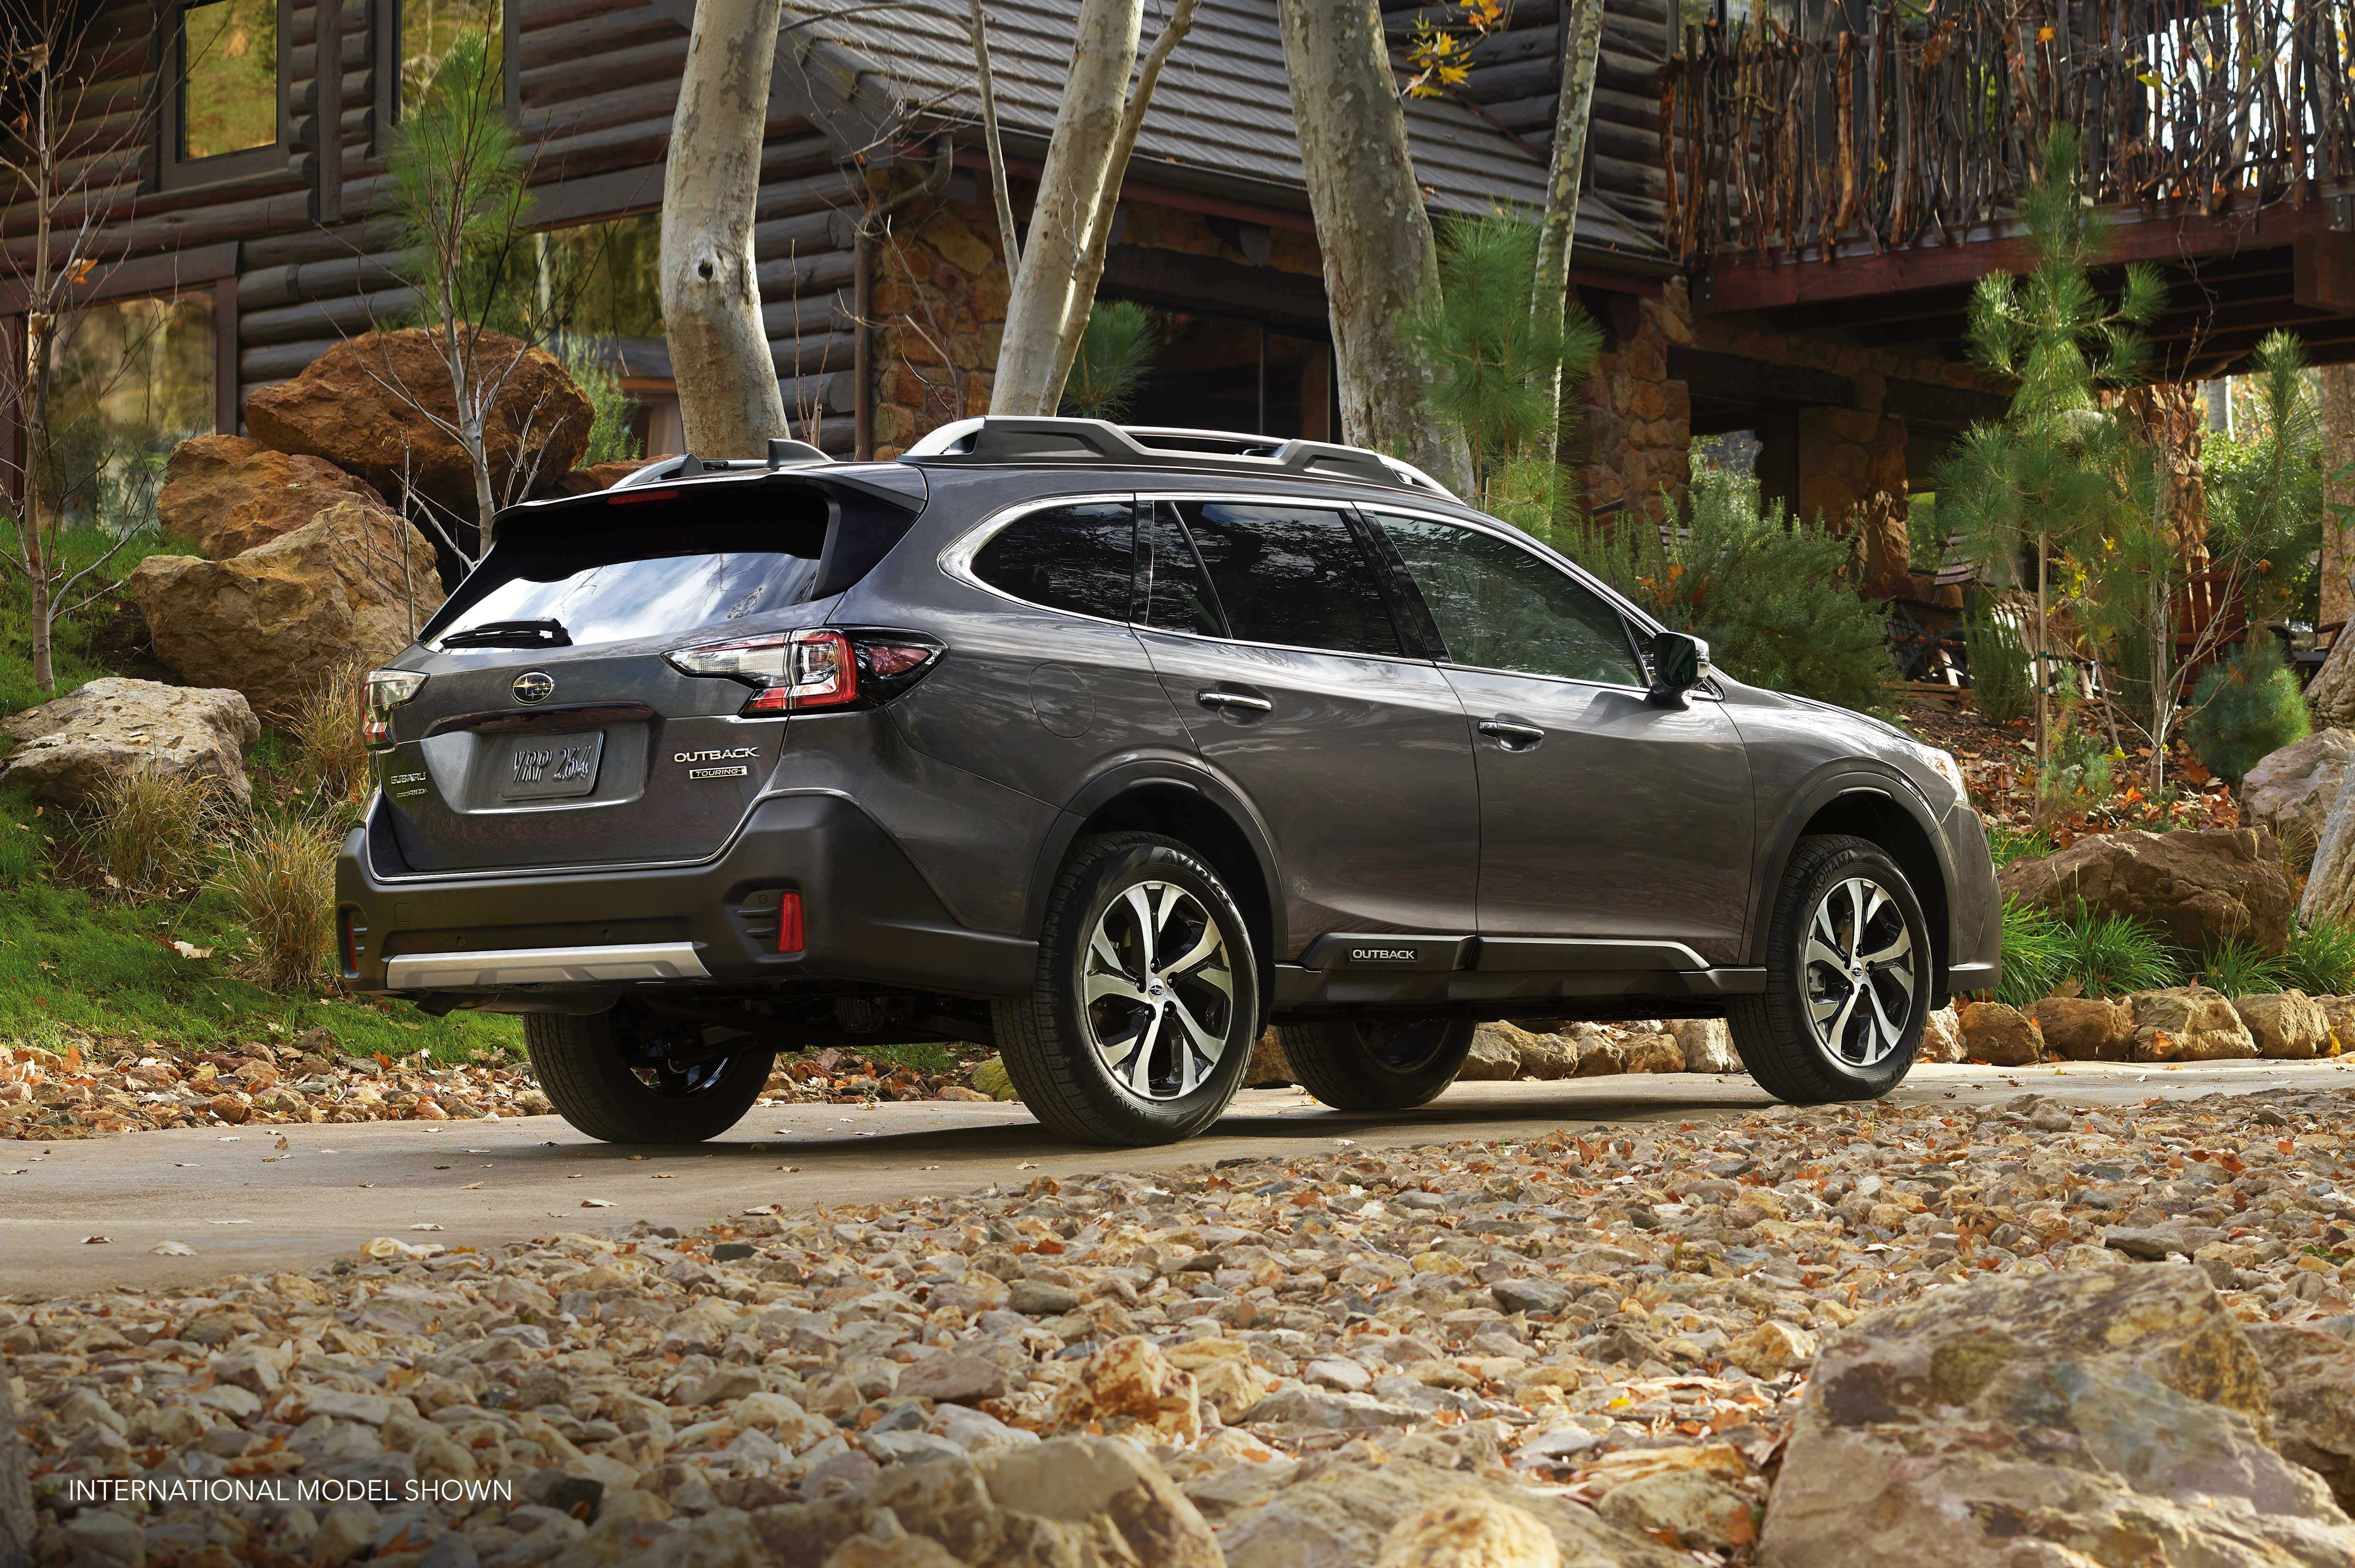 65 New Subaru Outback 2020 Model Review And Release Date